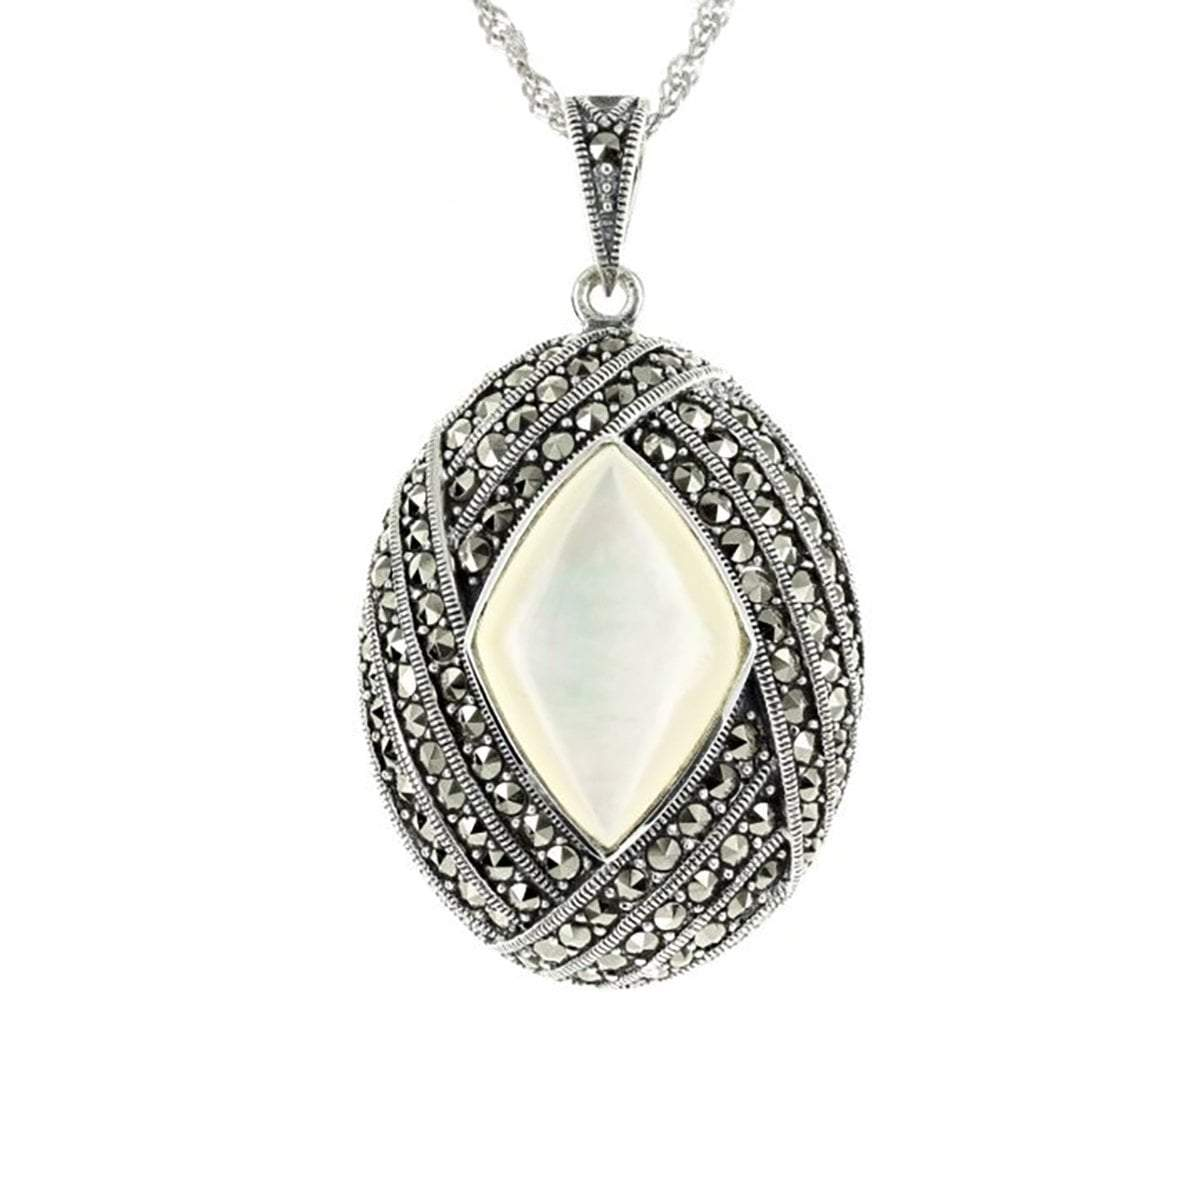 Oval Marcasite & Mother of Pearl Pendant in Sterling Silver